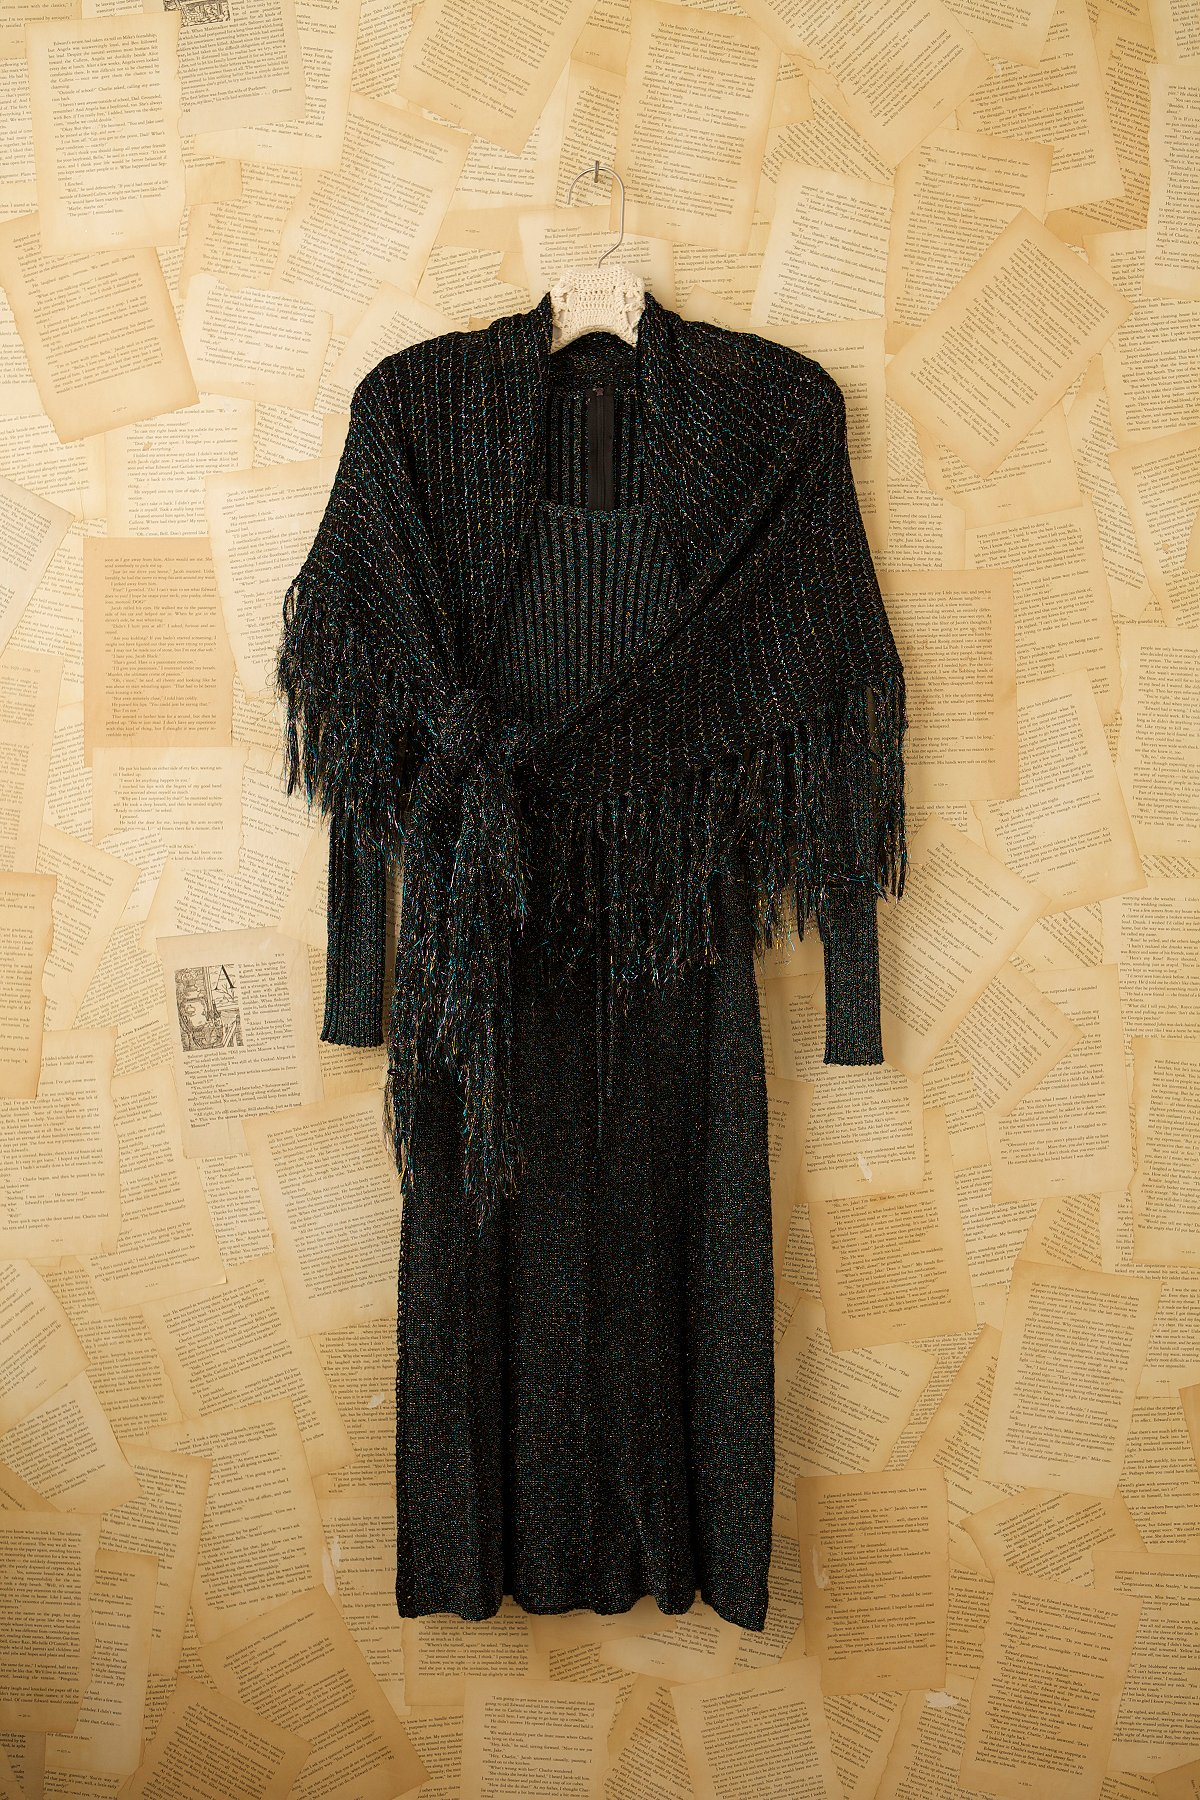 Vintage 70s Sparkle Dress with Scarf